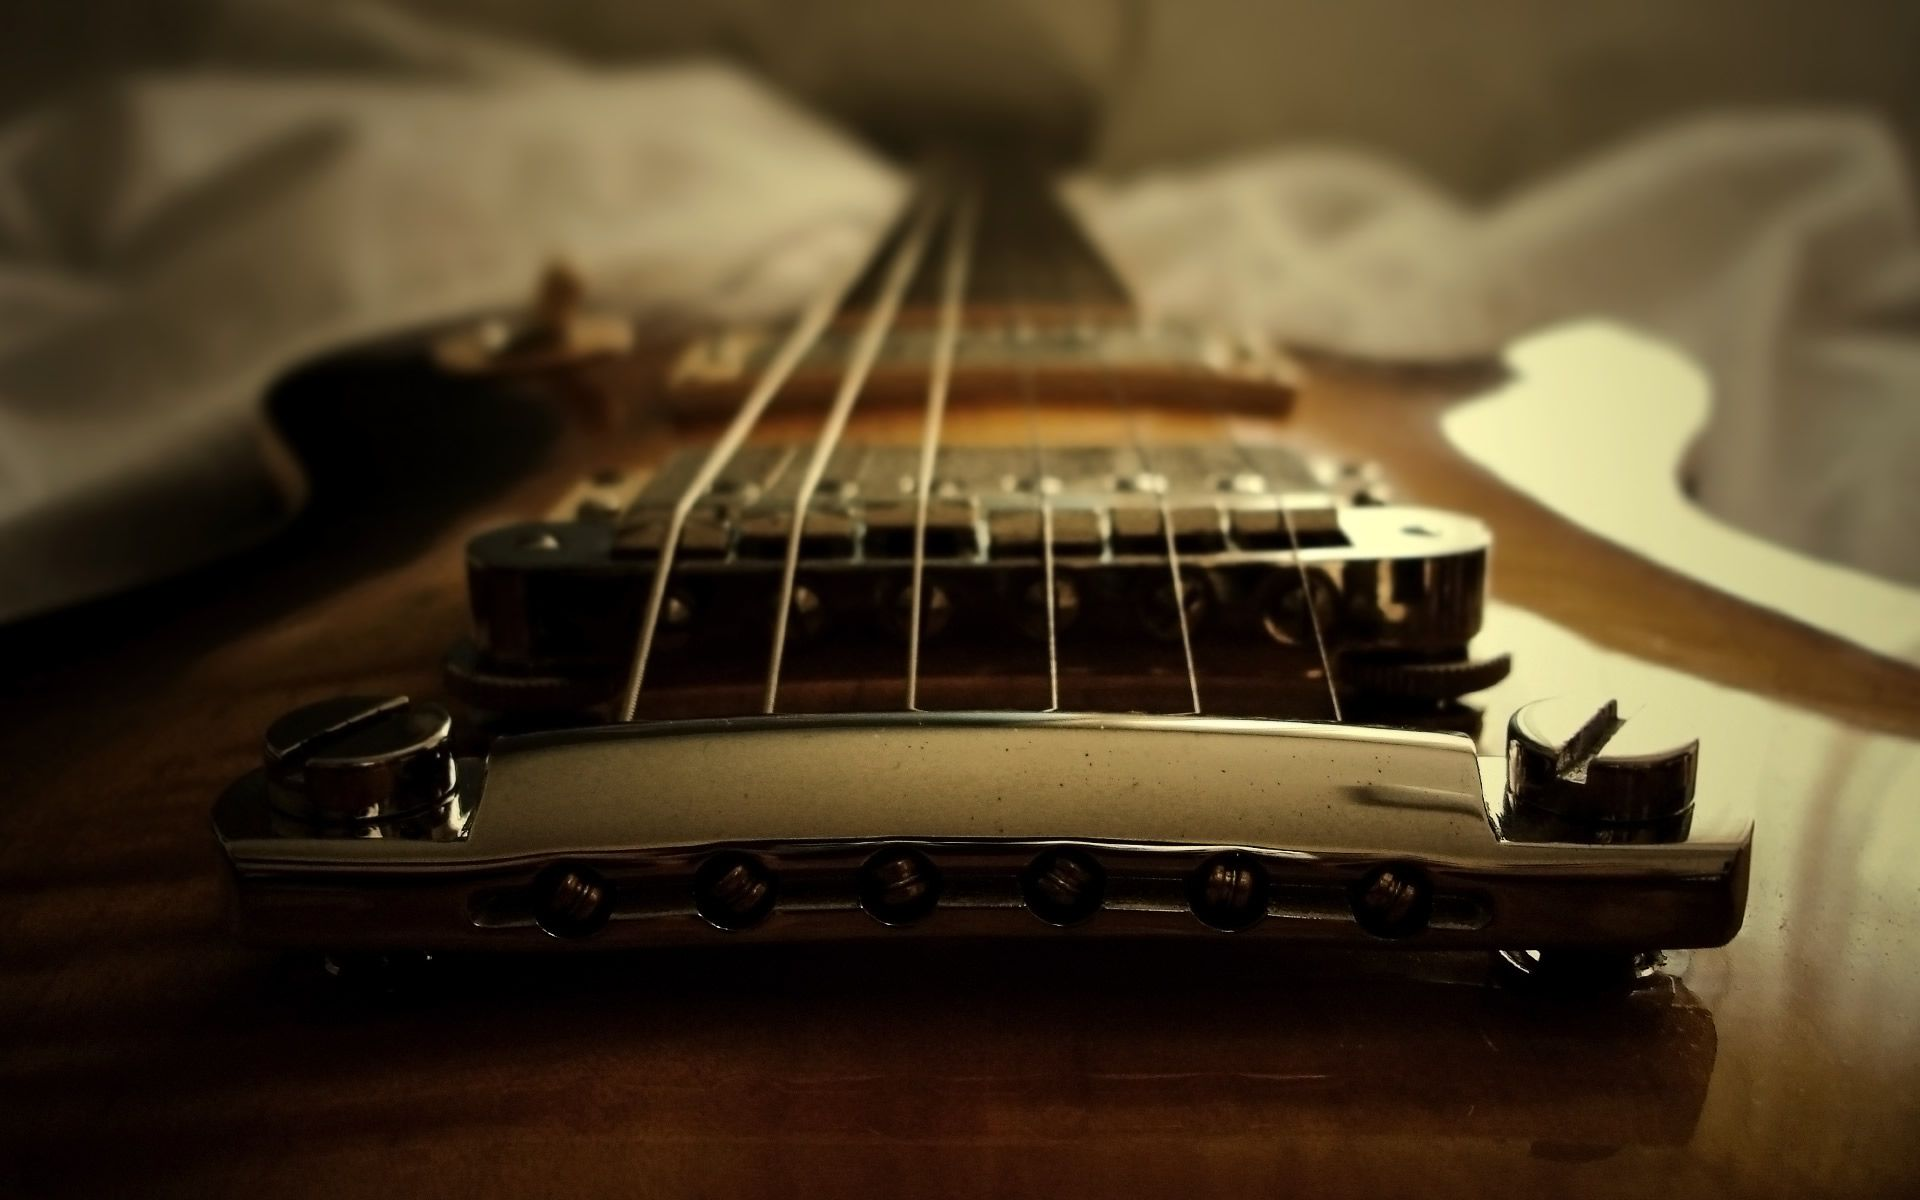 Pin By Kate Frey On Guitars Are Objects Of Desire Guitar Pics Guitar Electric Guitar